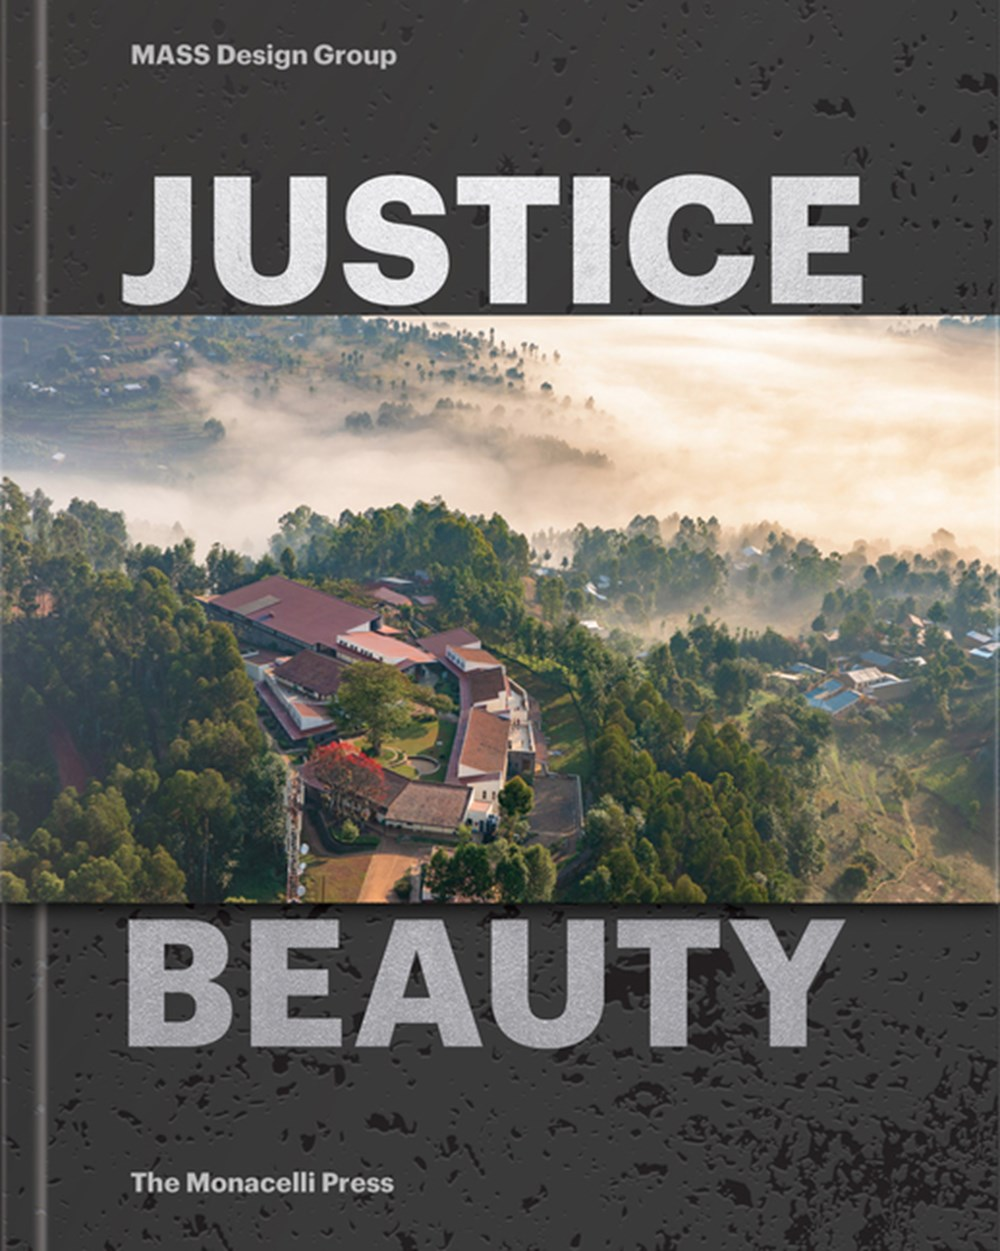 Justice Is Beauty Mass Design Group